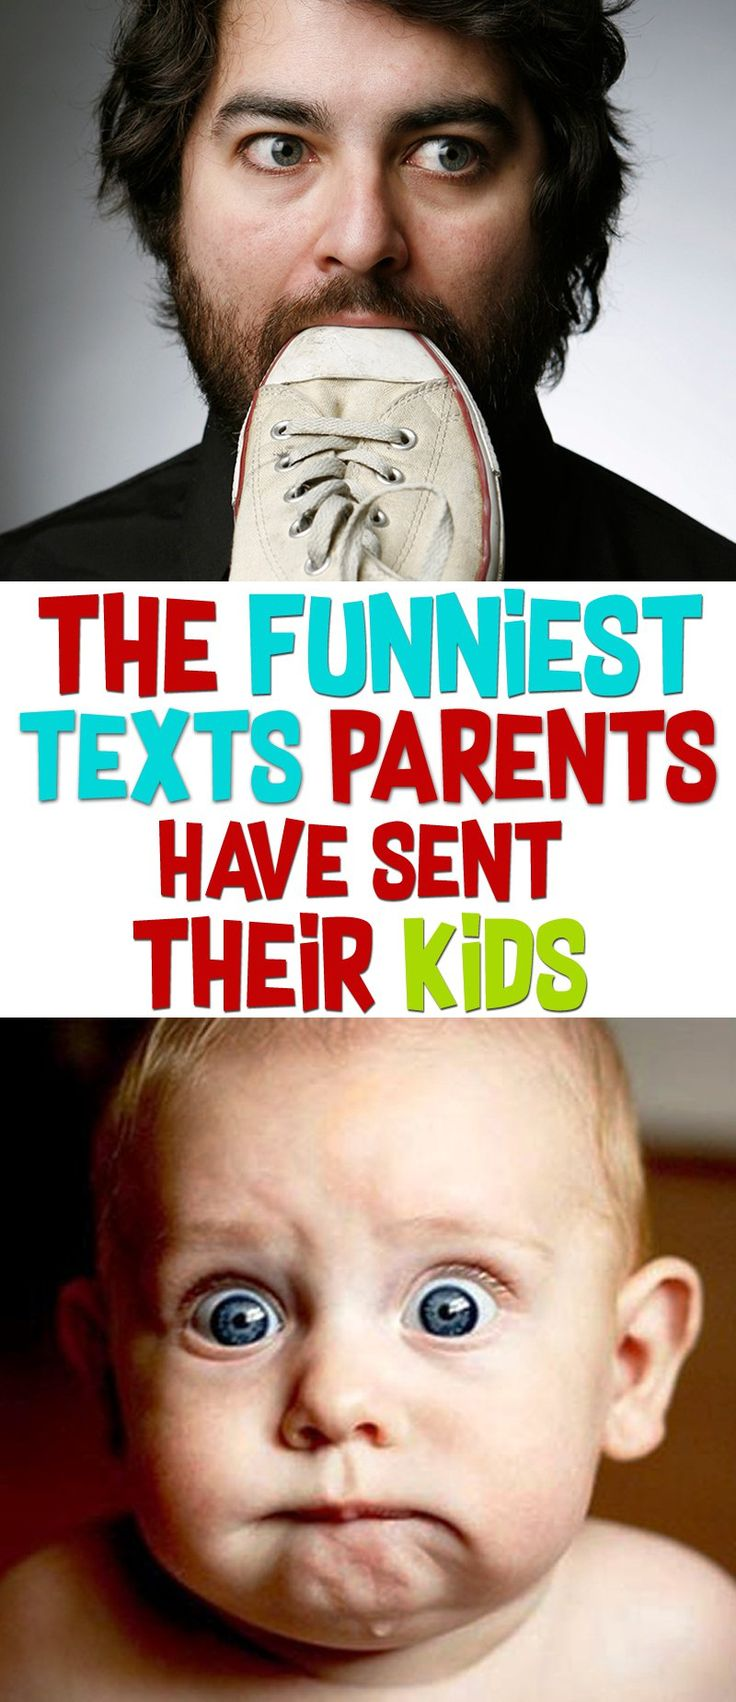 Do you need a good laugh today? These kids have shared the funniest texts they have ever received from their parents. The sent parent messages just remind us that we have awesome moms and dads.